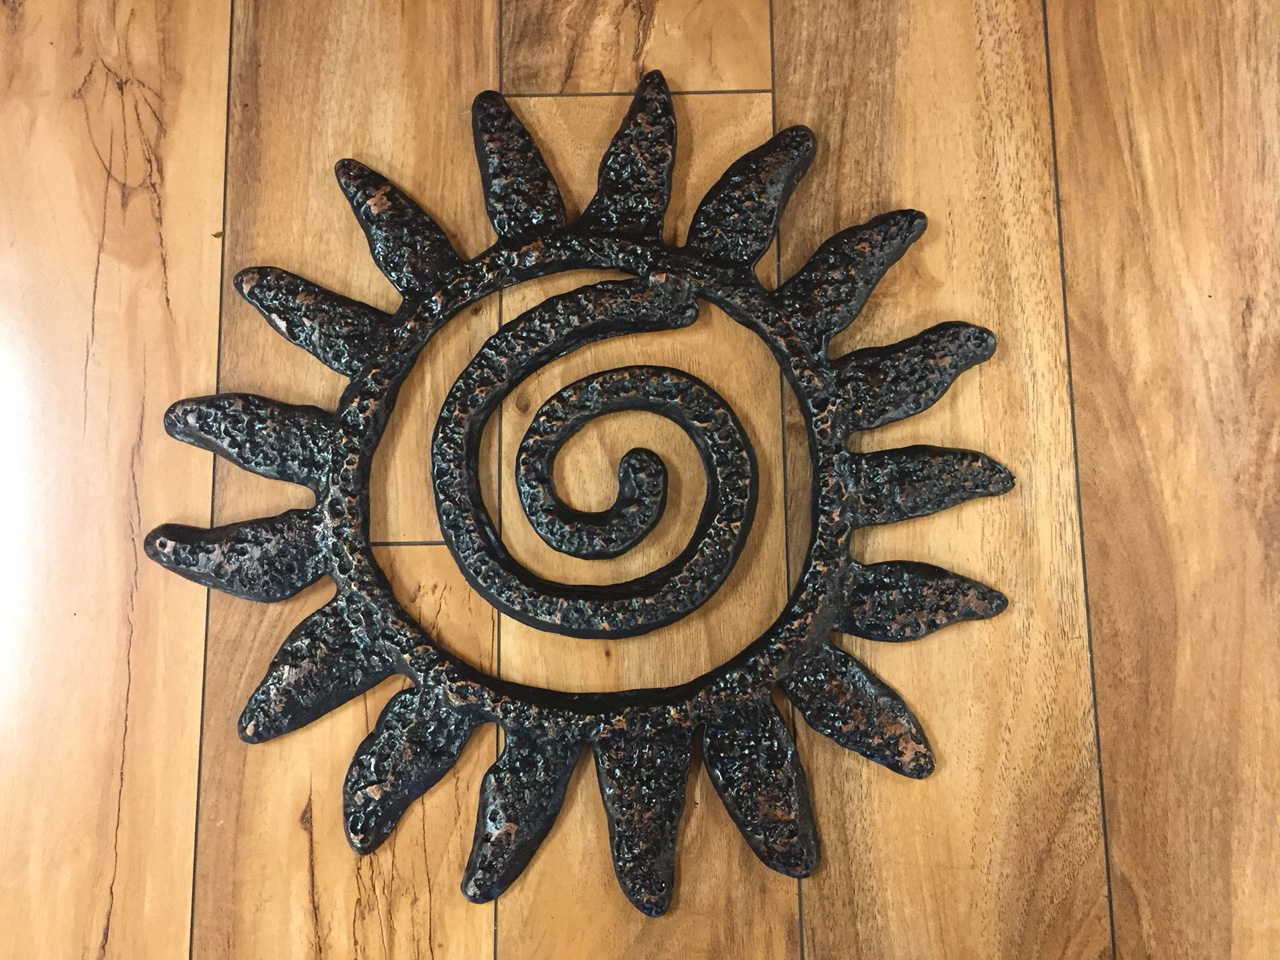 Spiral Sun by Charlie Corda wall hanging sculpture